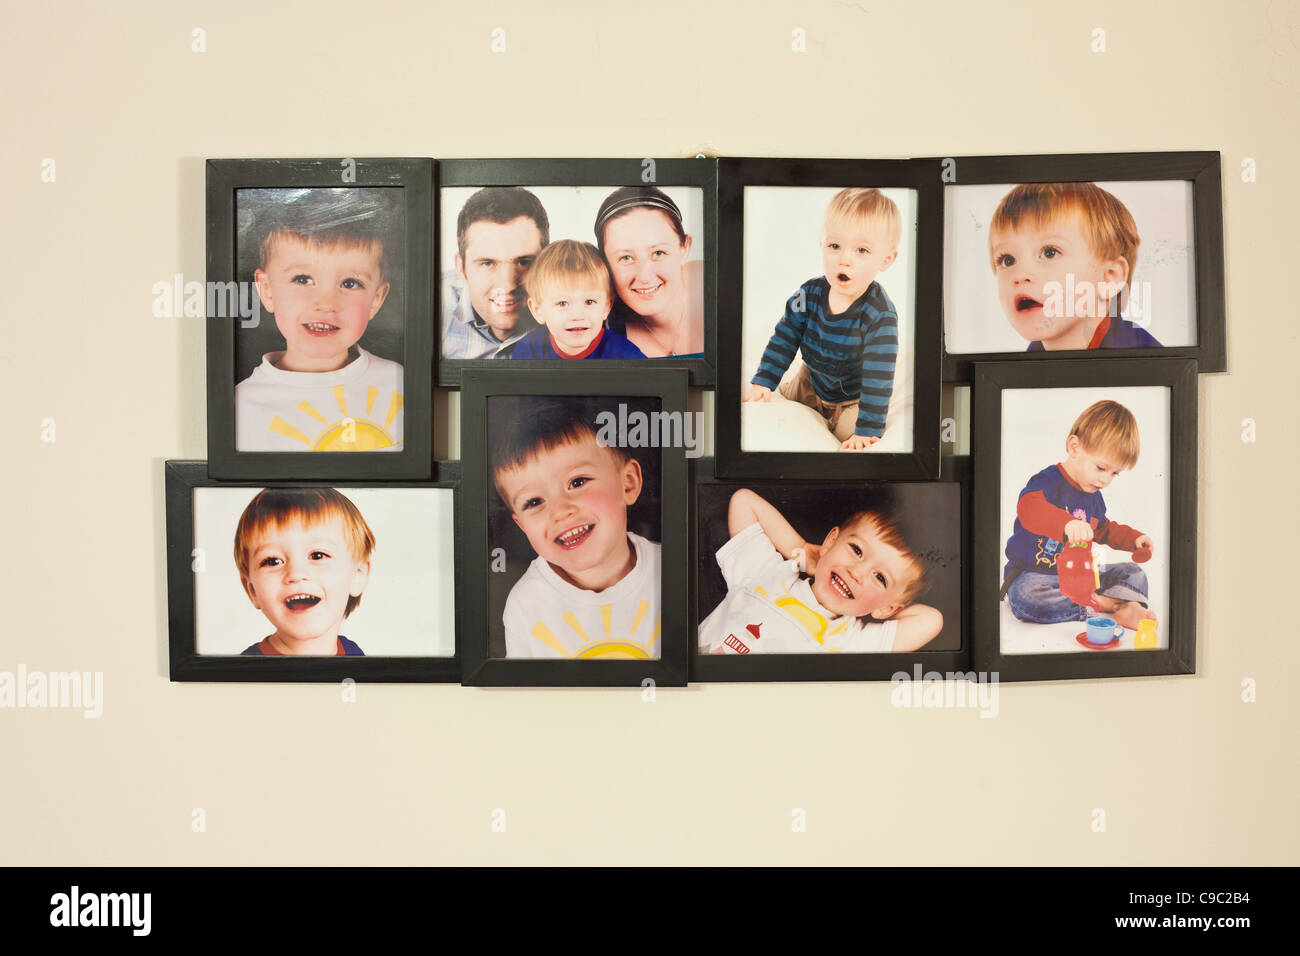 Family pictures in picture frame- model release provided for all faces in the image - Stock Image